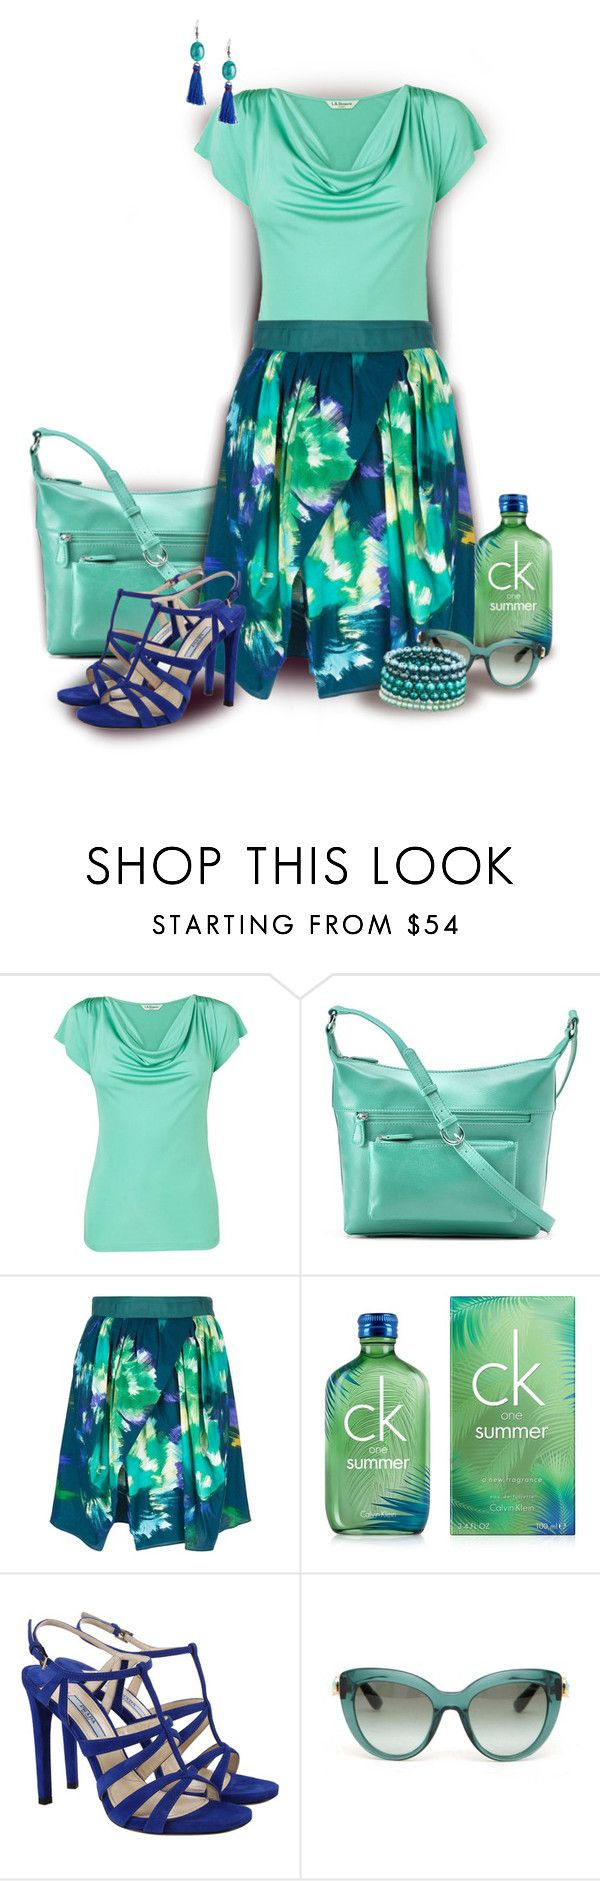 """Eggs Skirt with Turquoise Top"" by franceseattle ❤ liked on Polyvore featuring L.K.Bennett, ILI, Eggs, Calvin Klein, Prada, Dolce&Gabbana and Honora"